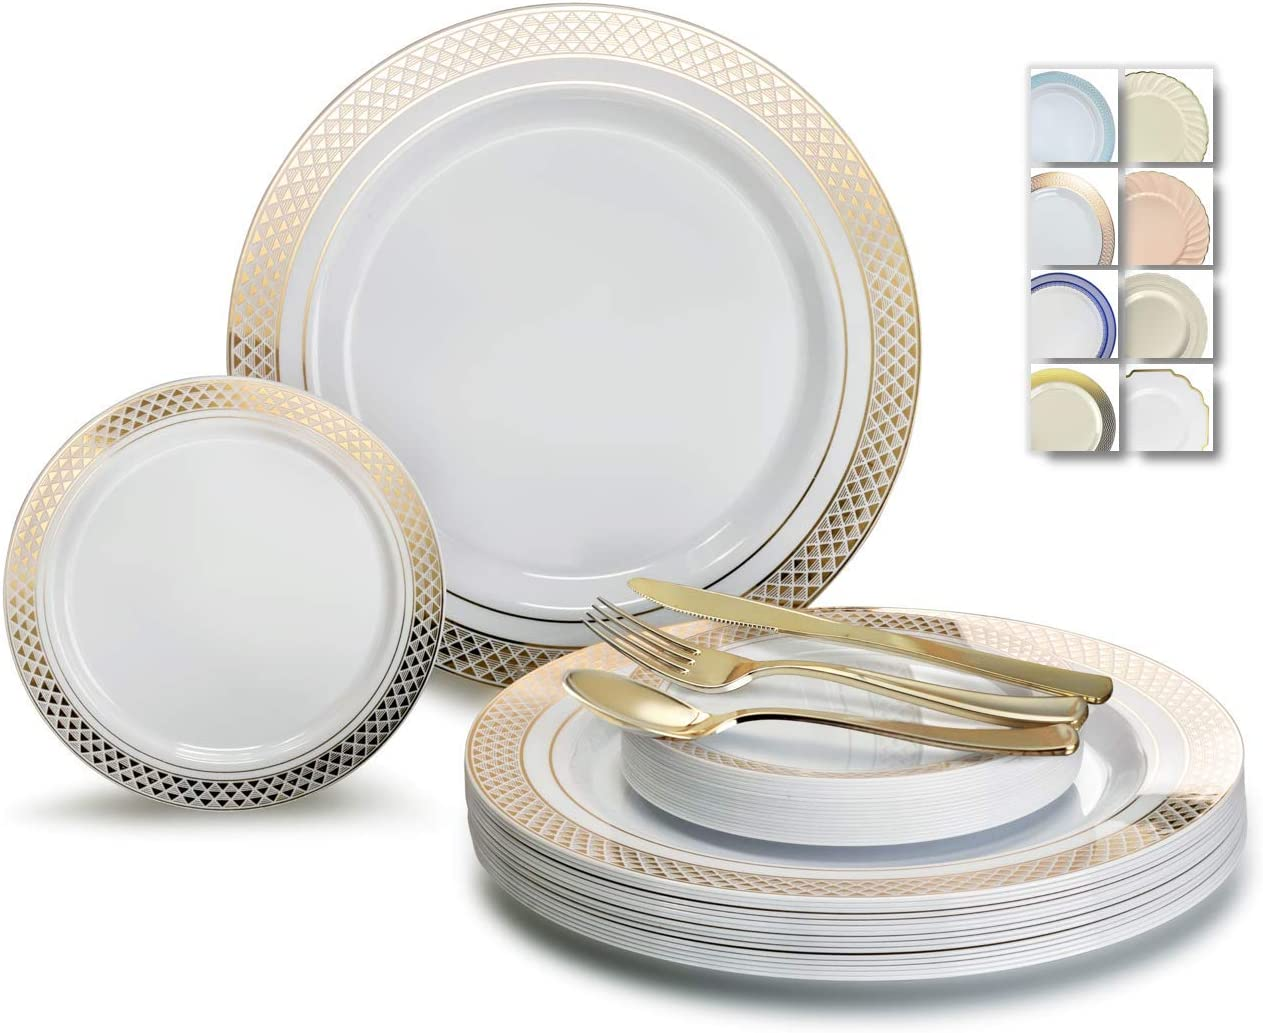 OCCASIONS 600 Pcs Set & 120 GuestWedding Disposable Plastic Plate & Silverware Combo Set (Celebration White & Gold plates, Gold Silverware) 61Ob0P7ppQL